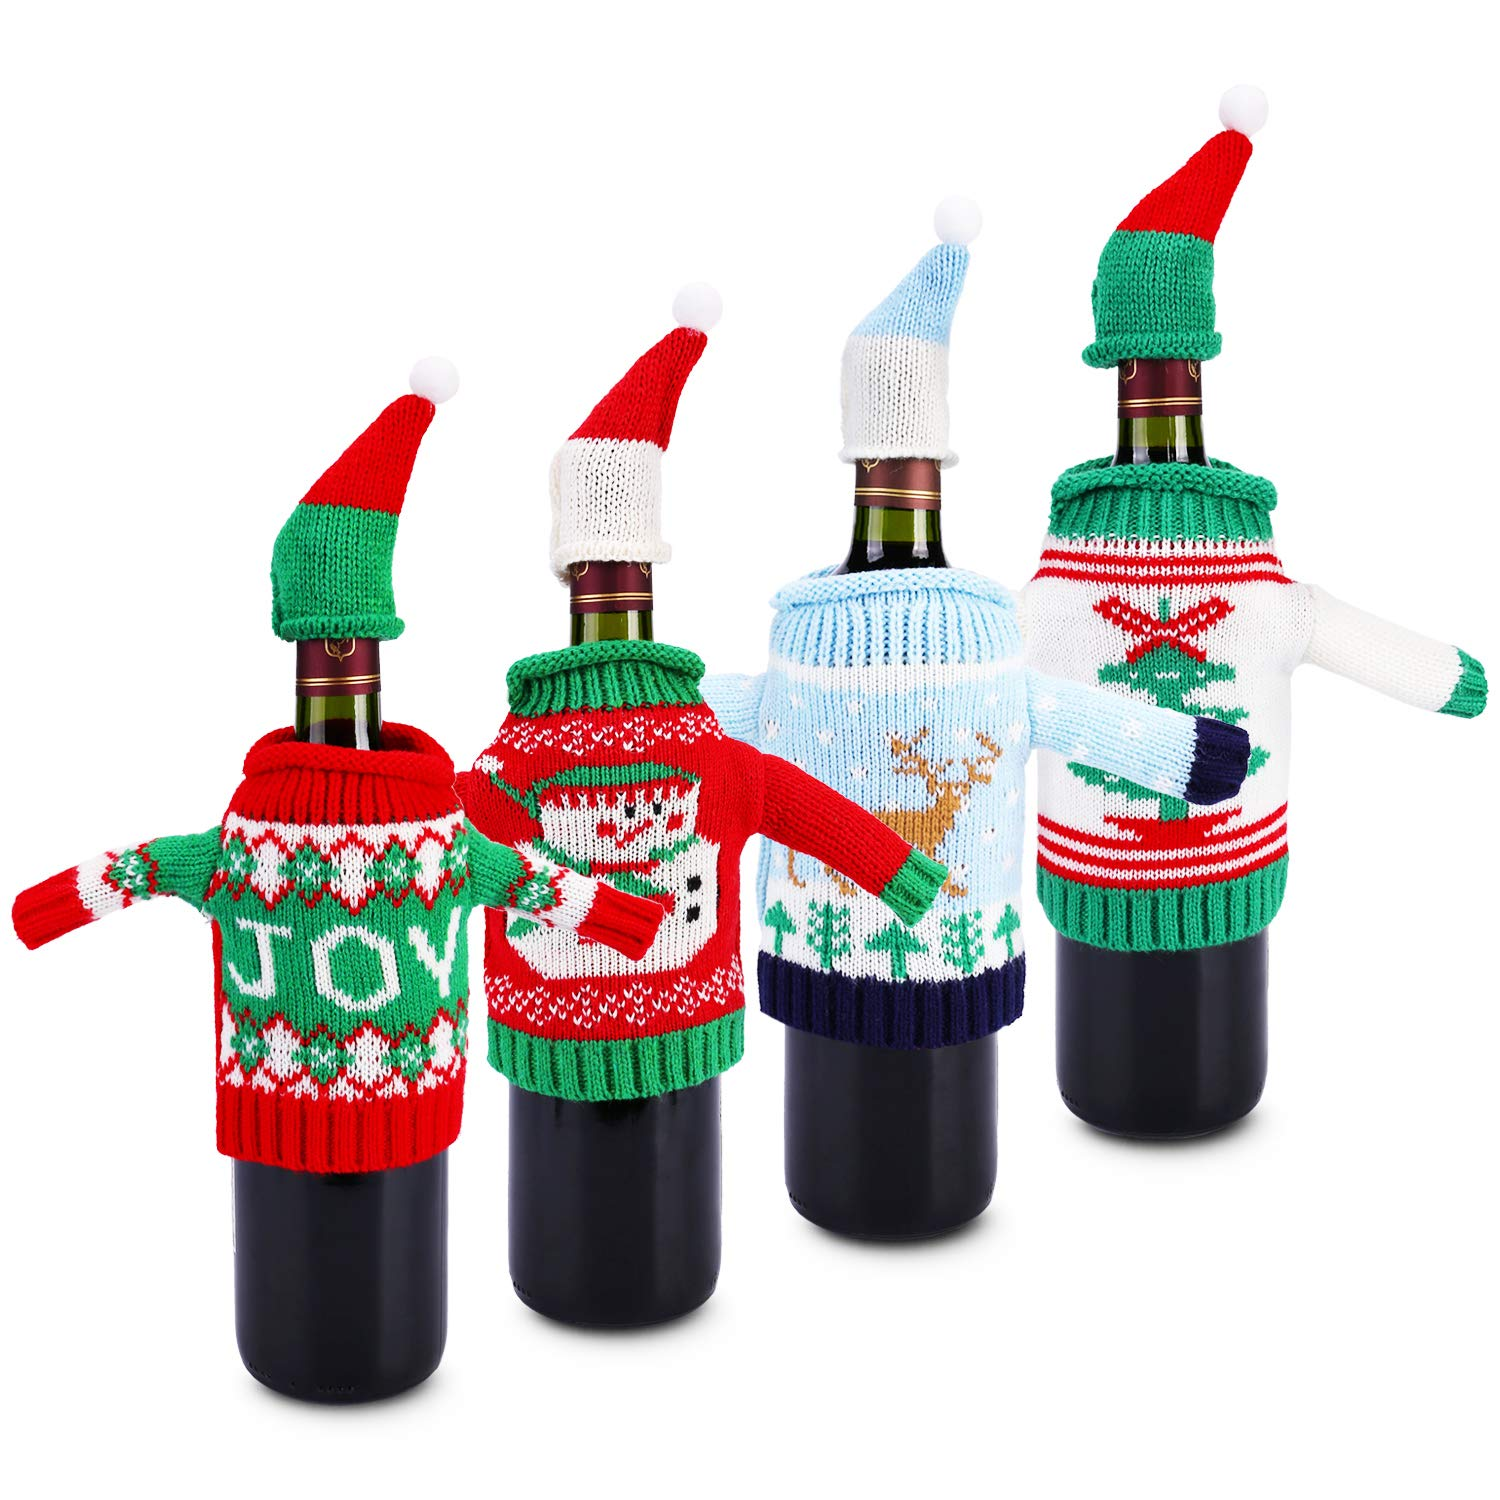 Ugly Sweater Christmas Party Kit,Konsait Knitted Christmas Wine Bottle Cover&Toppers for Beer Water Bottles Ornament for Xmas Christmas Party Favors Supplies Table Decoration Decor Holiday Gift(4pack)